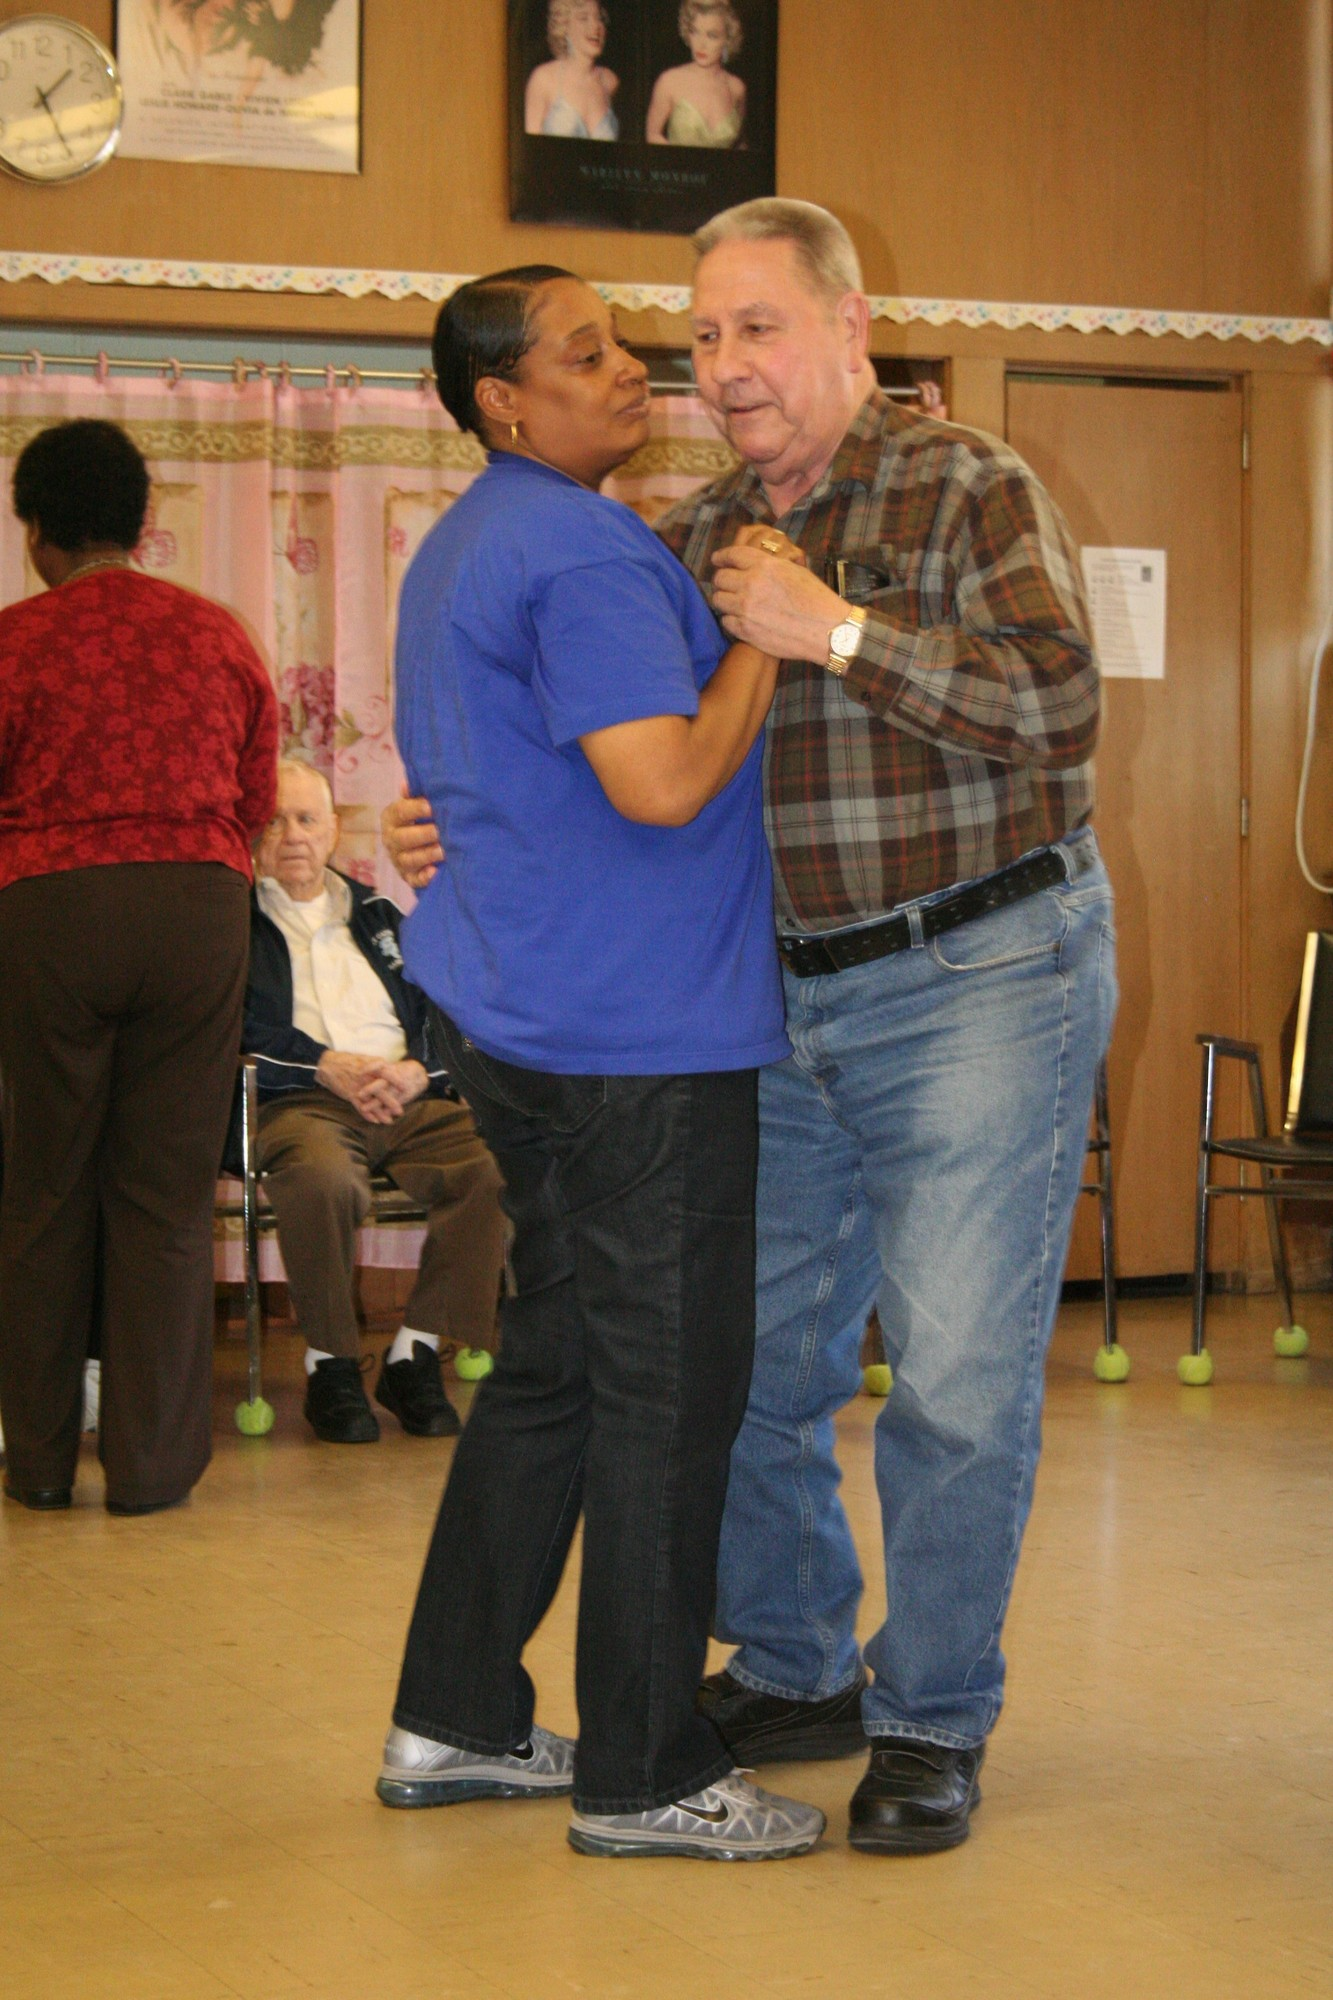 Merrick resident Ramona Grimm said her husband, Allan, never danced before coming to �The Club.� Staff member Marie Humphrey shared a dance with Allan.